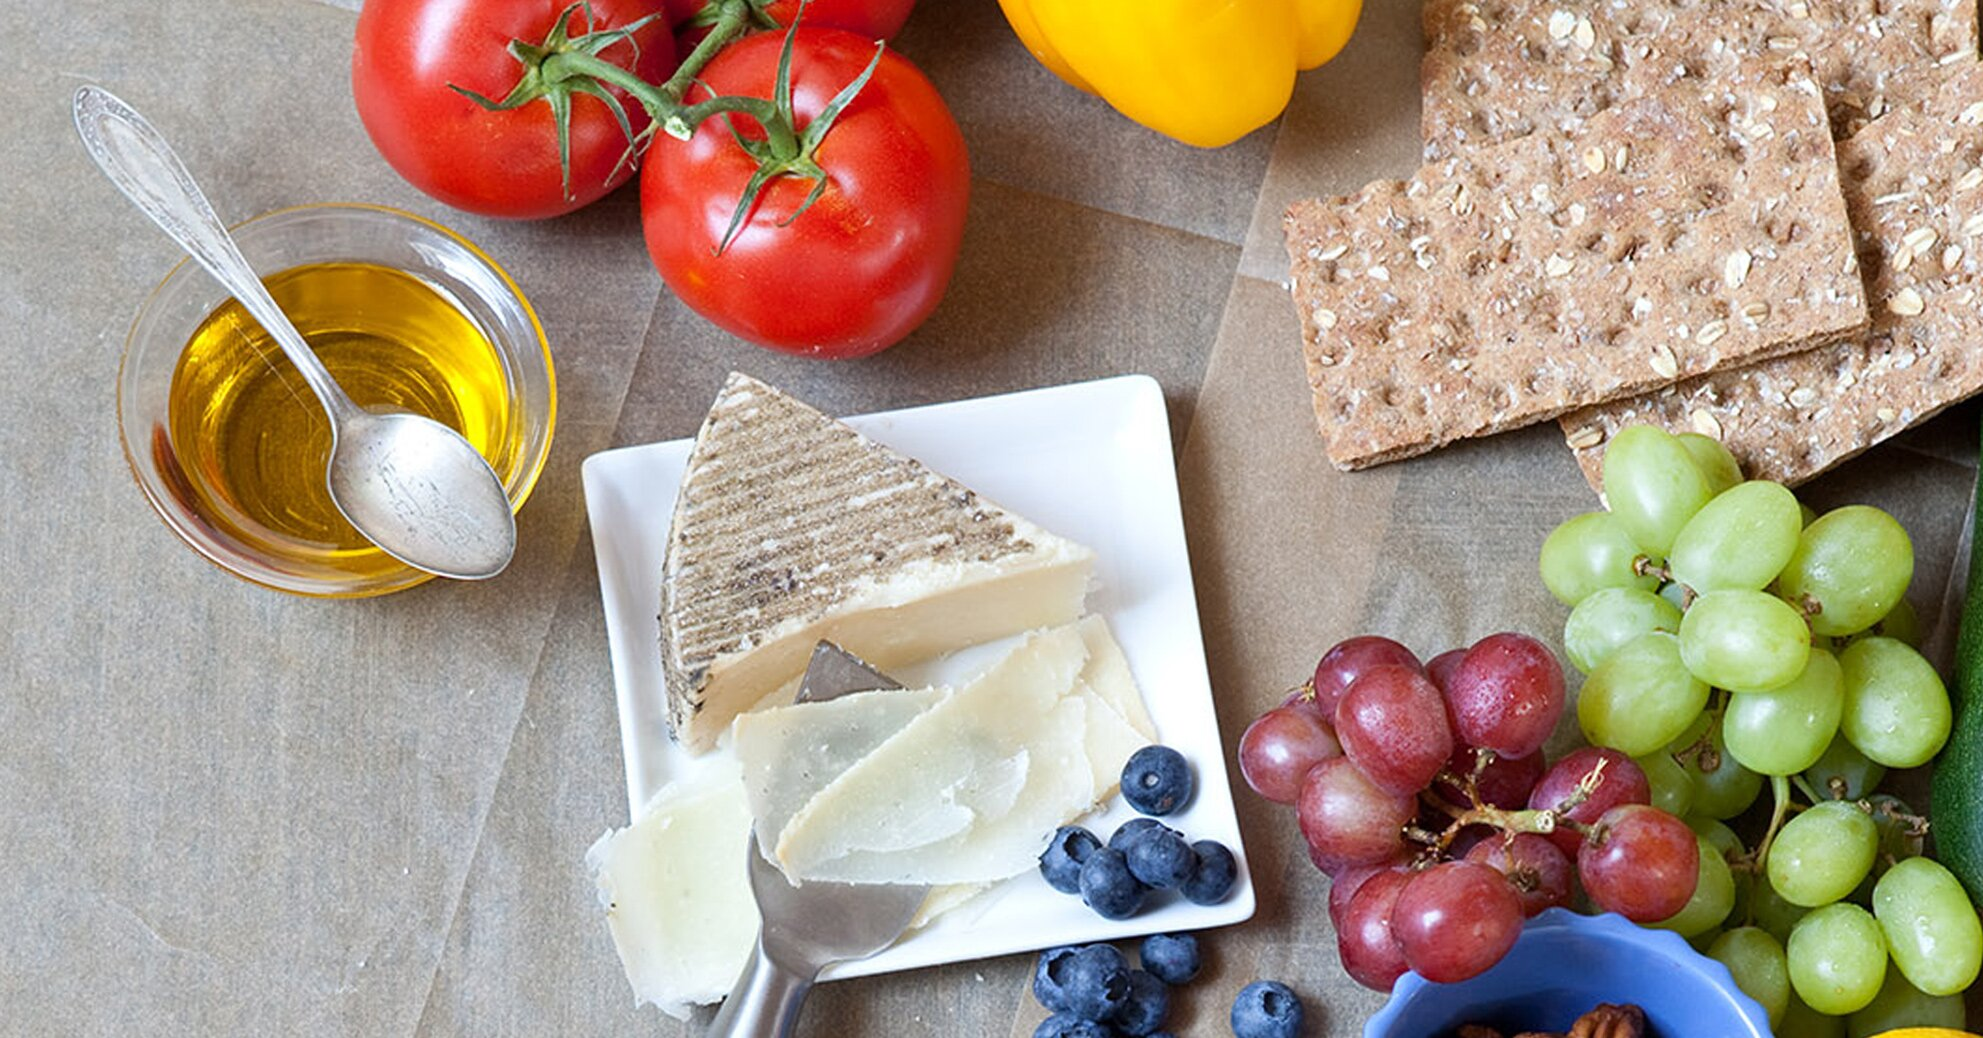 Find Out Why Dietitians are Obsessed with the Mediterranean Diet